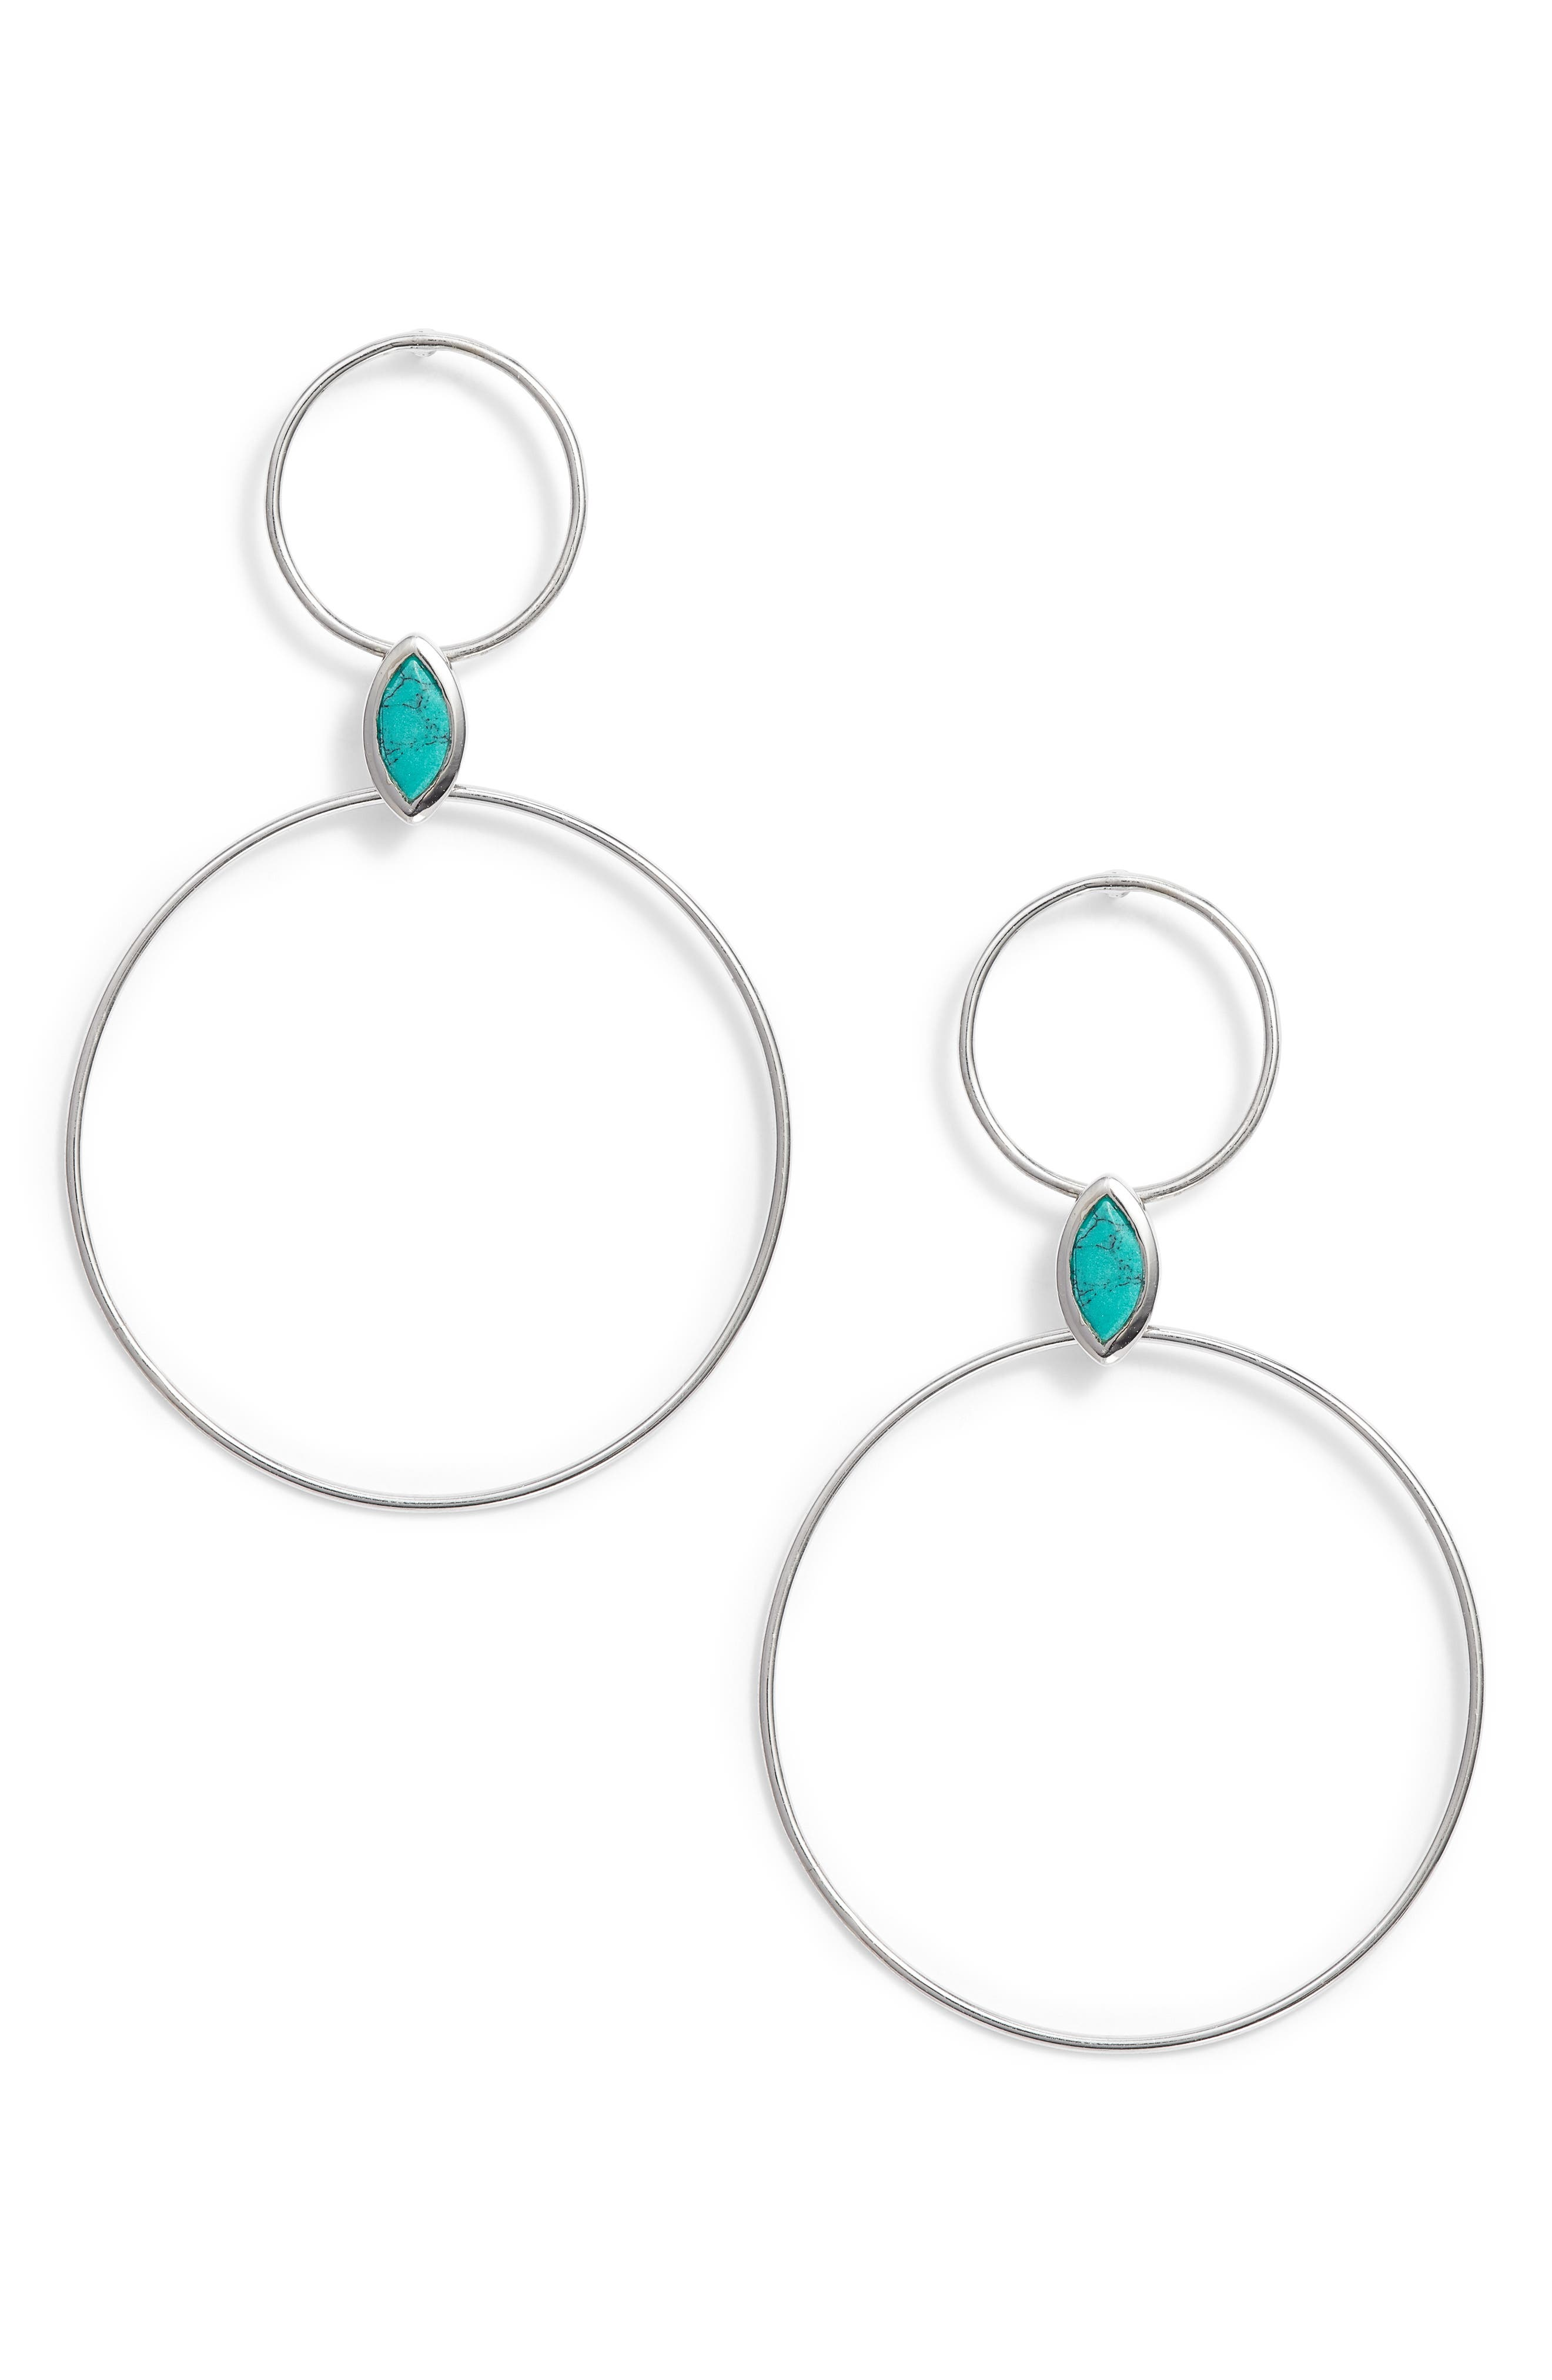 Double Circle Stone Drop Earrings,                             Main thumbnail 1, color,                             Silver/ Turquoise